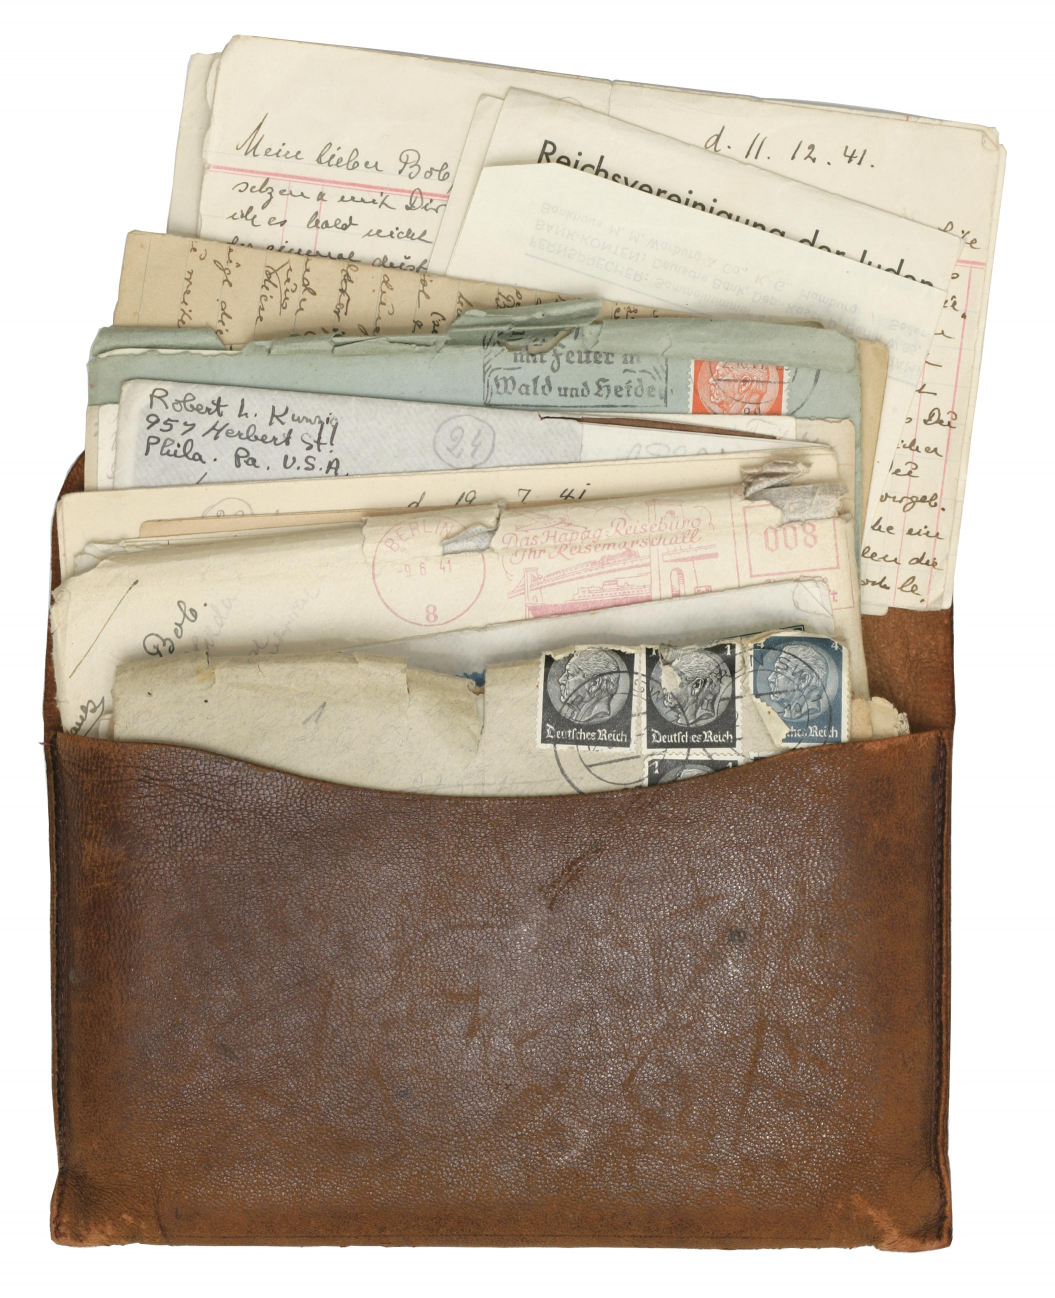 Photo of a leather pouch filled with letters